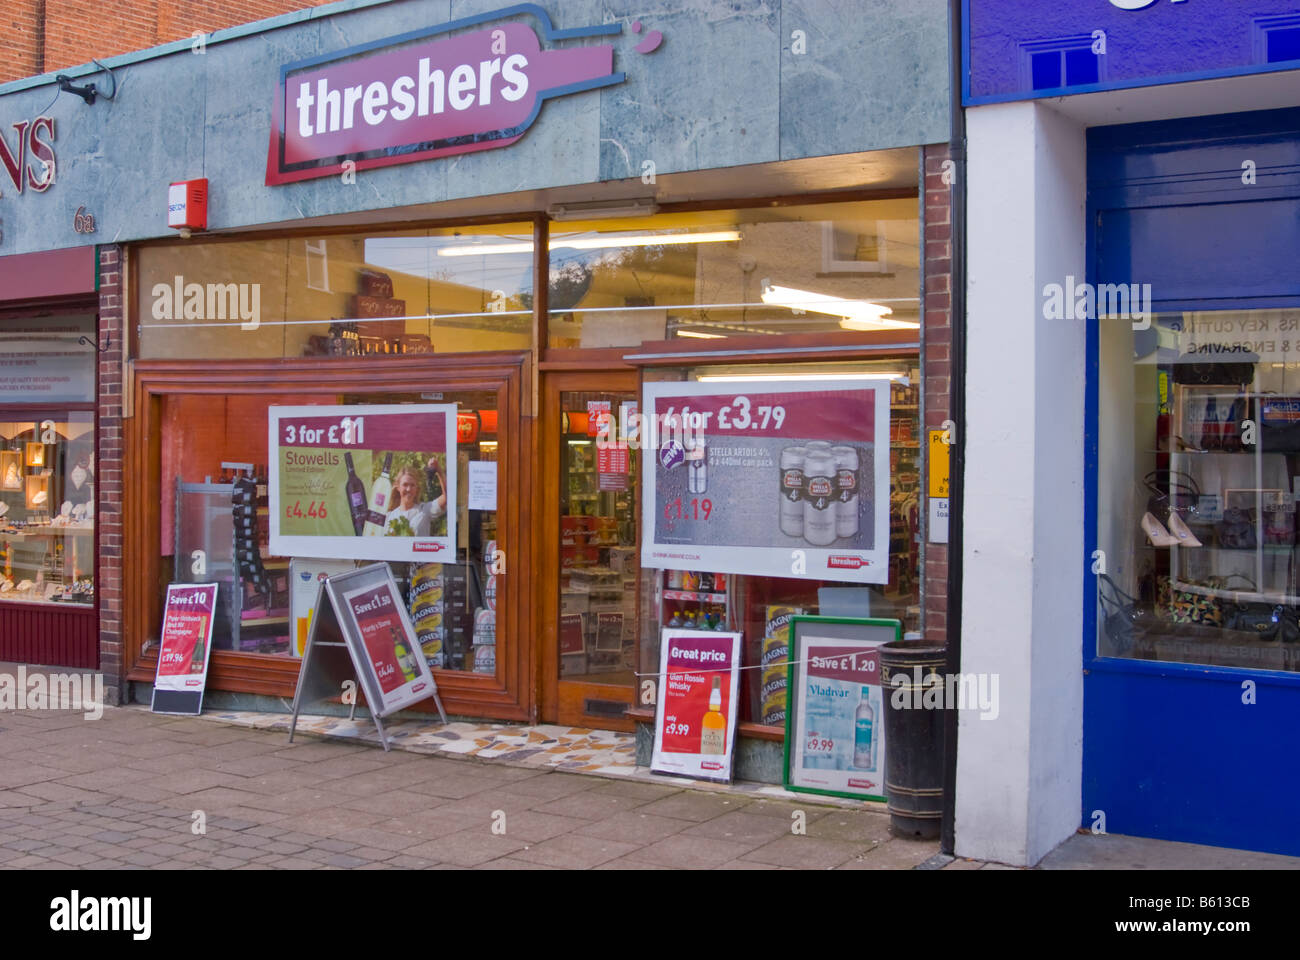 Threshers Off License Selling Cheap Alcohol With Offers Advertised On  Boards Outside Shop Store In Woodbridge,Suffolk,Uk